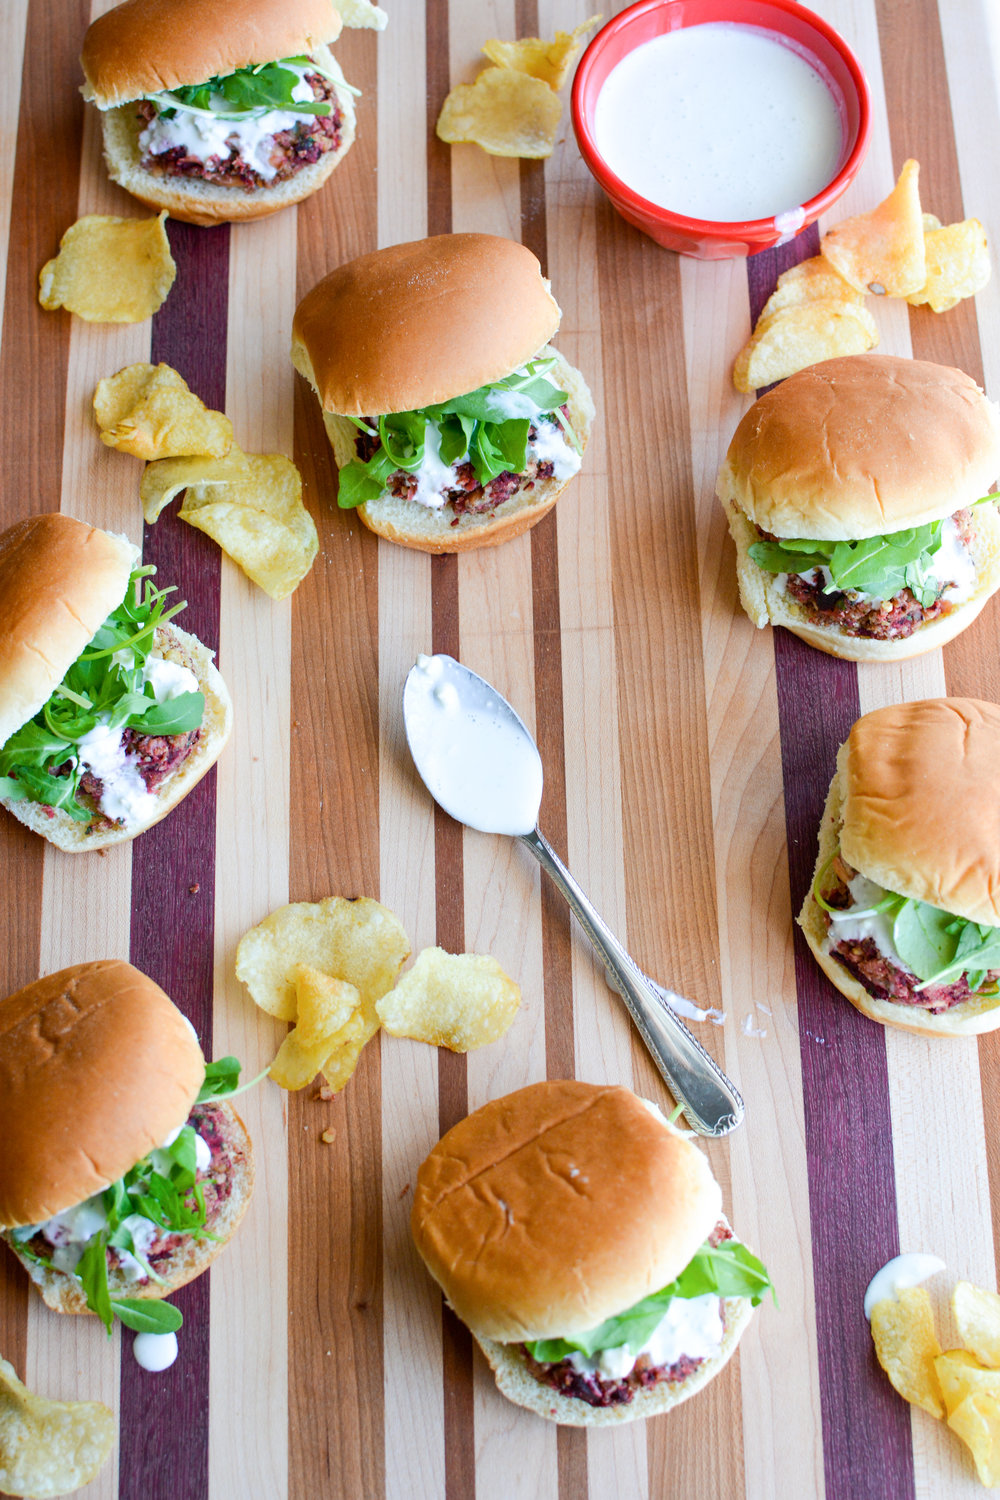 Beet, Bean and Blue Cheese Sliders with Blue Cheese Sauce - Kristin's Kitchen